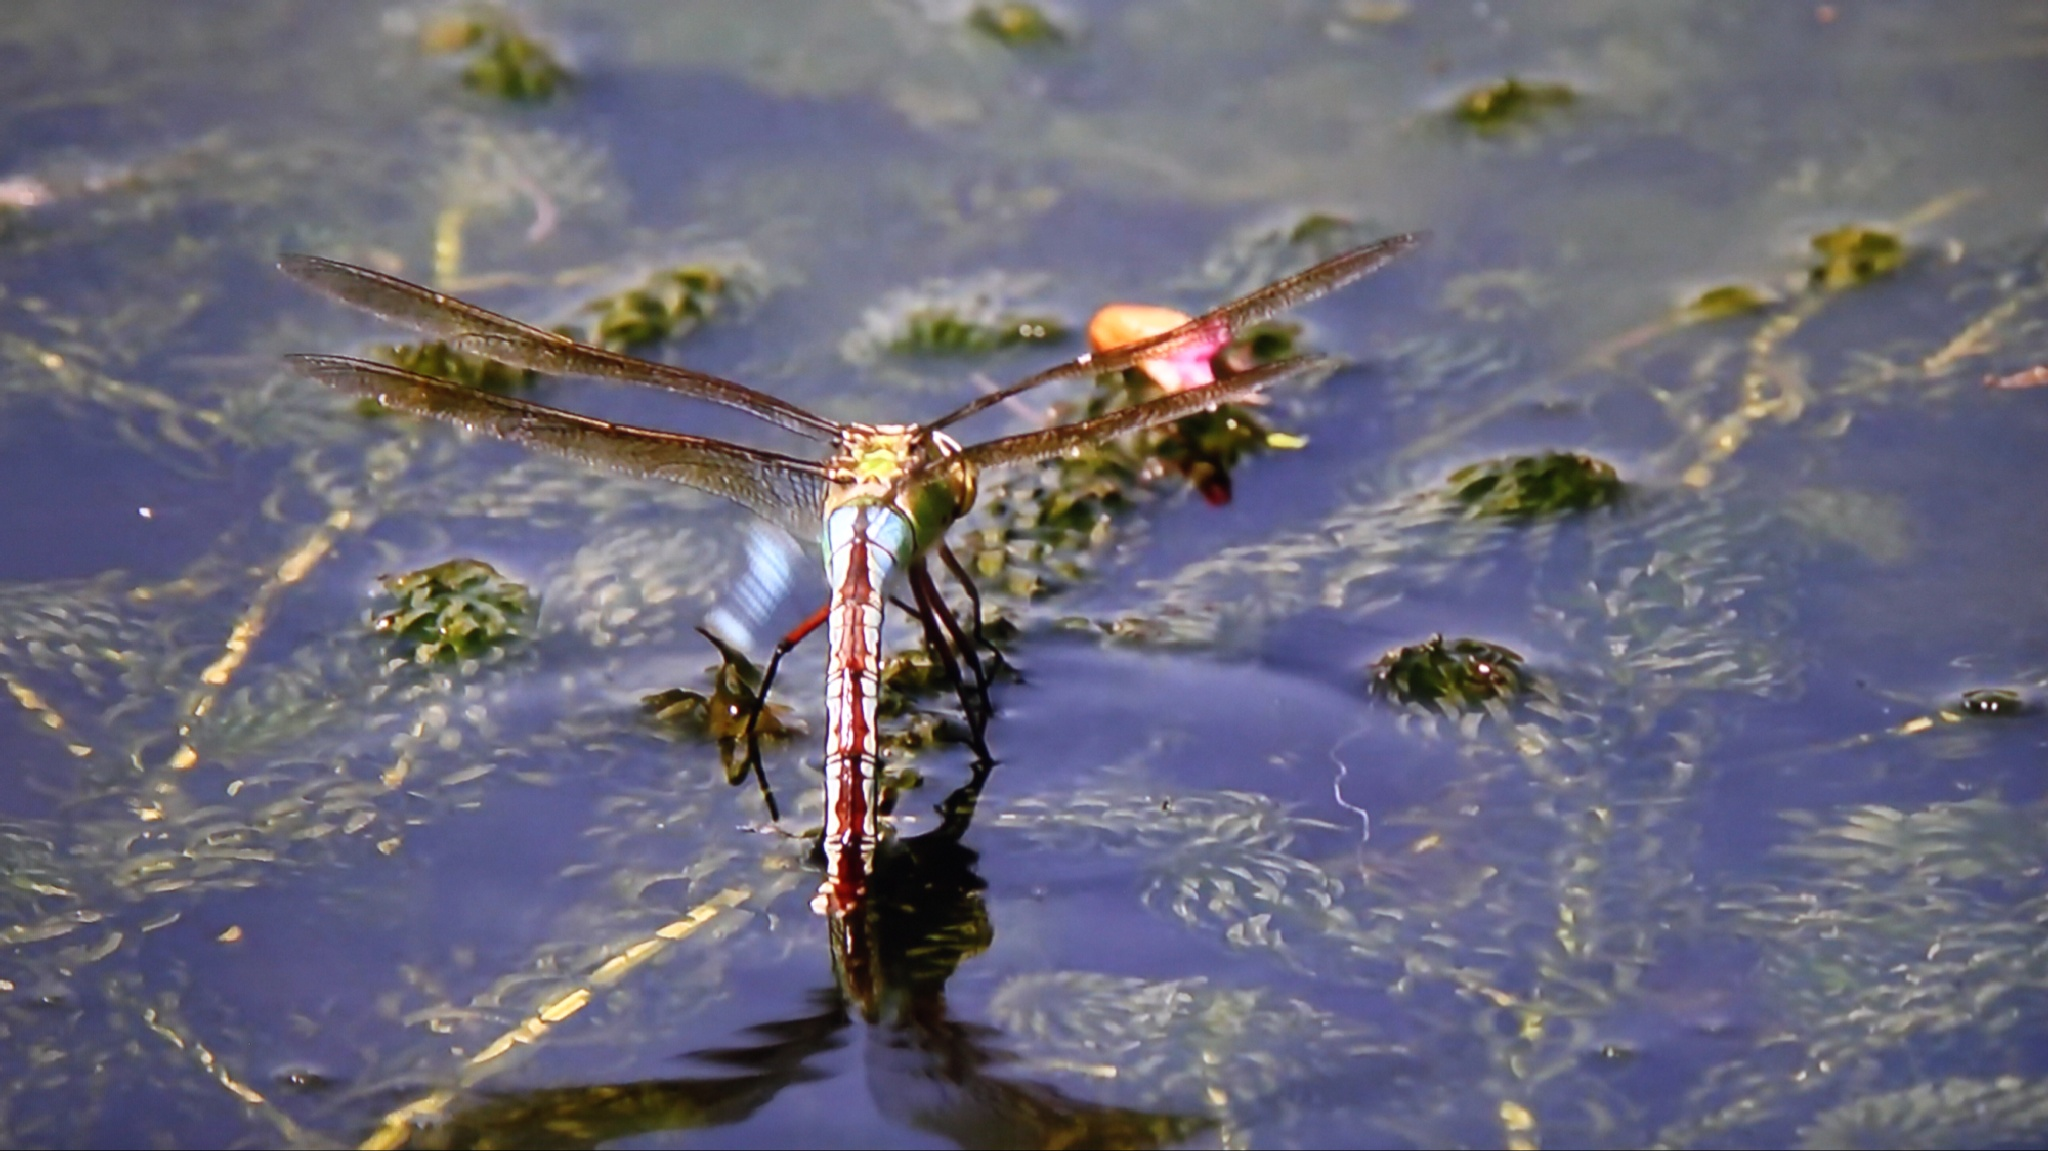 a dragon fly by Terry Reynolds